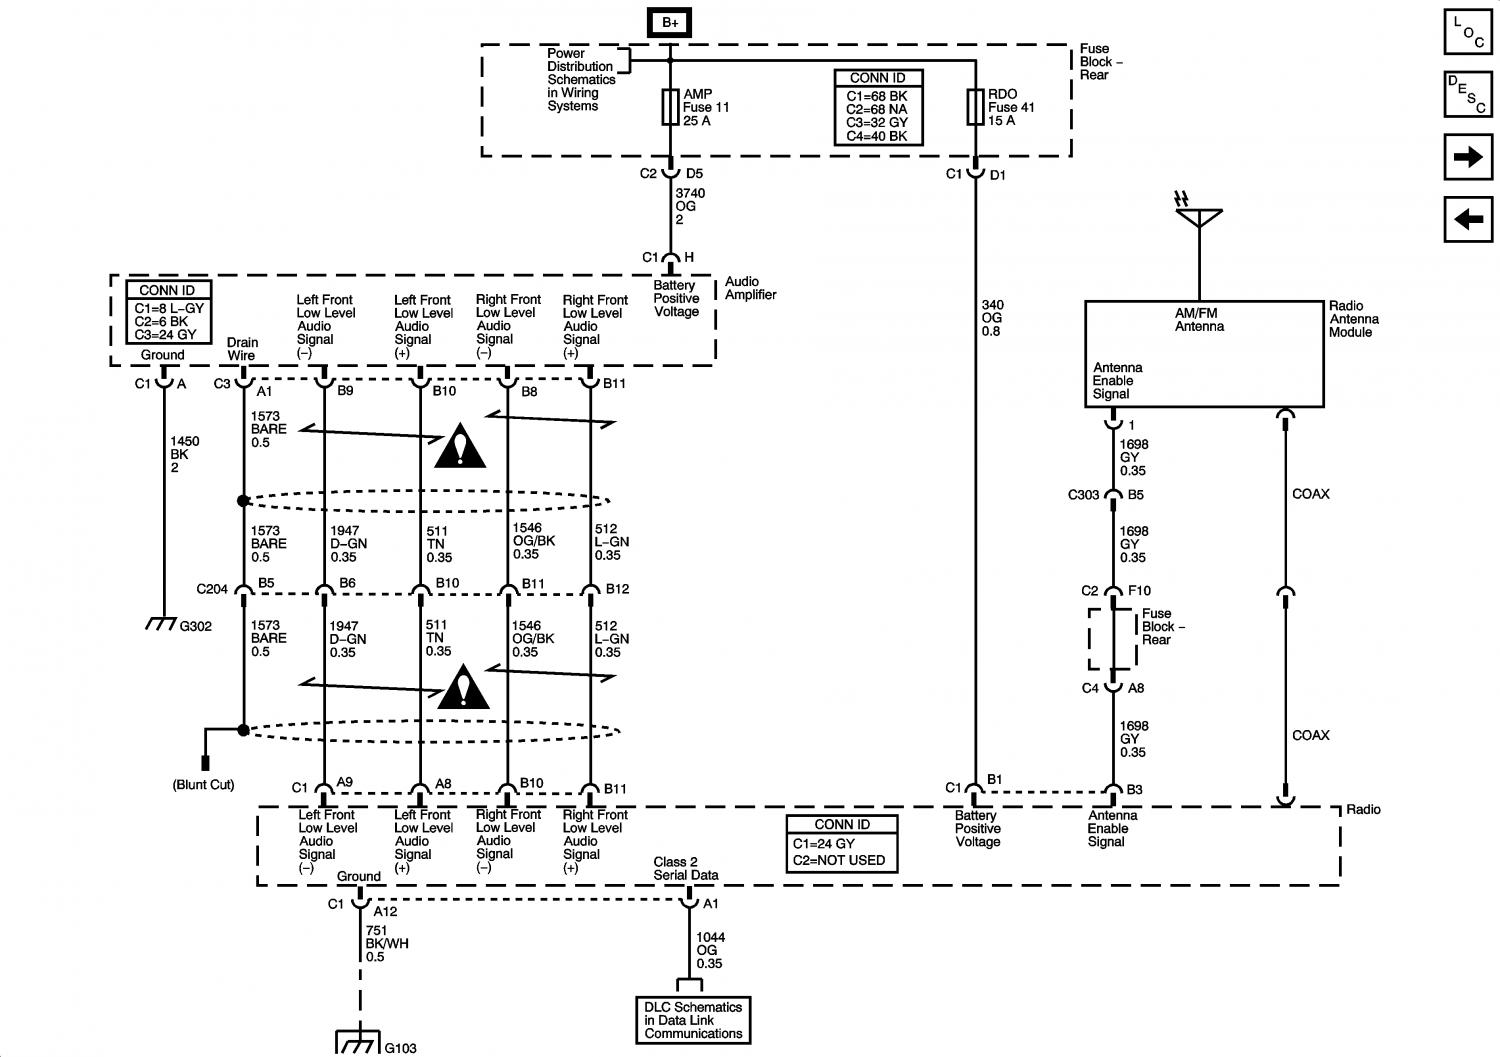 2004 silverado bose radio wiring diagram poulan chainsaw carburetor fuel line ssr schematics - chevy forum